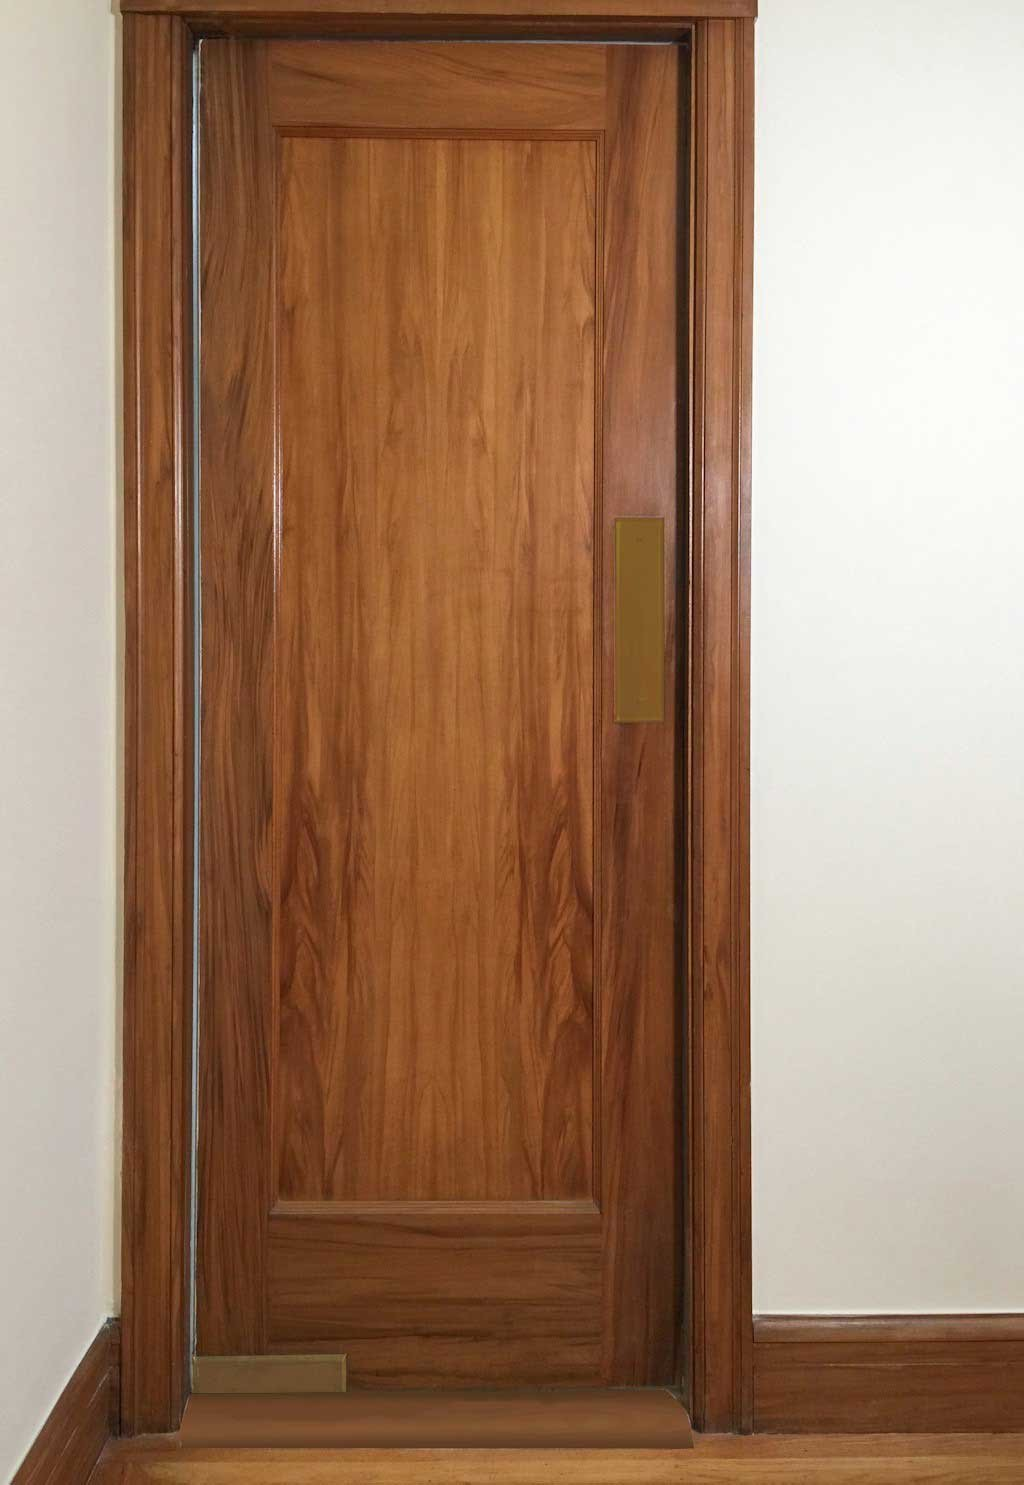 Kitchen Entry Swing Door Panel